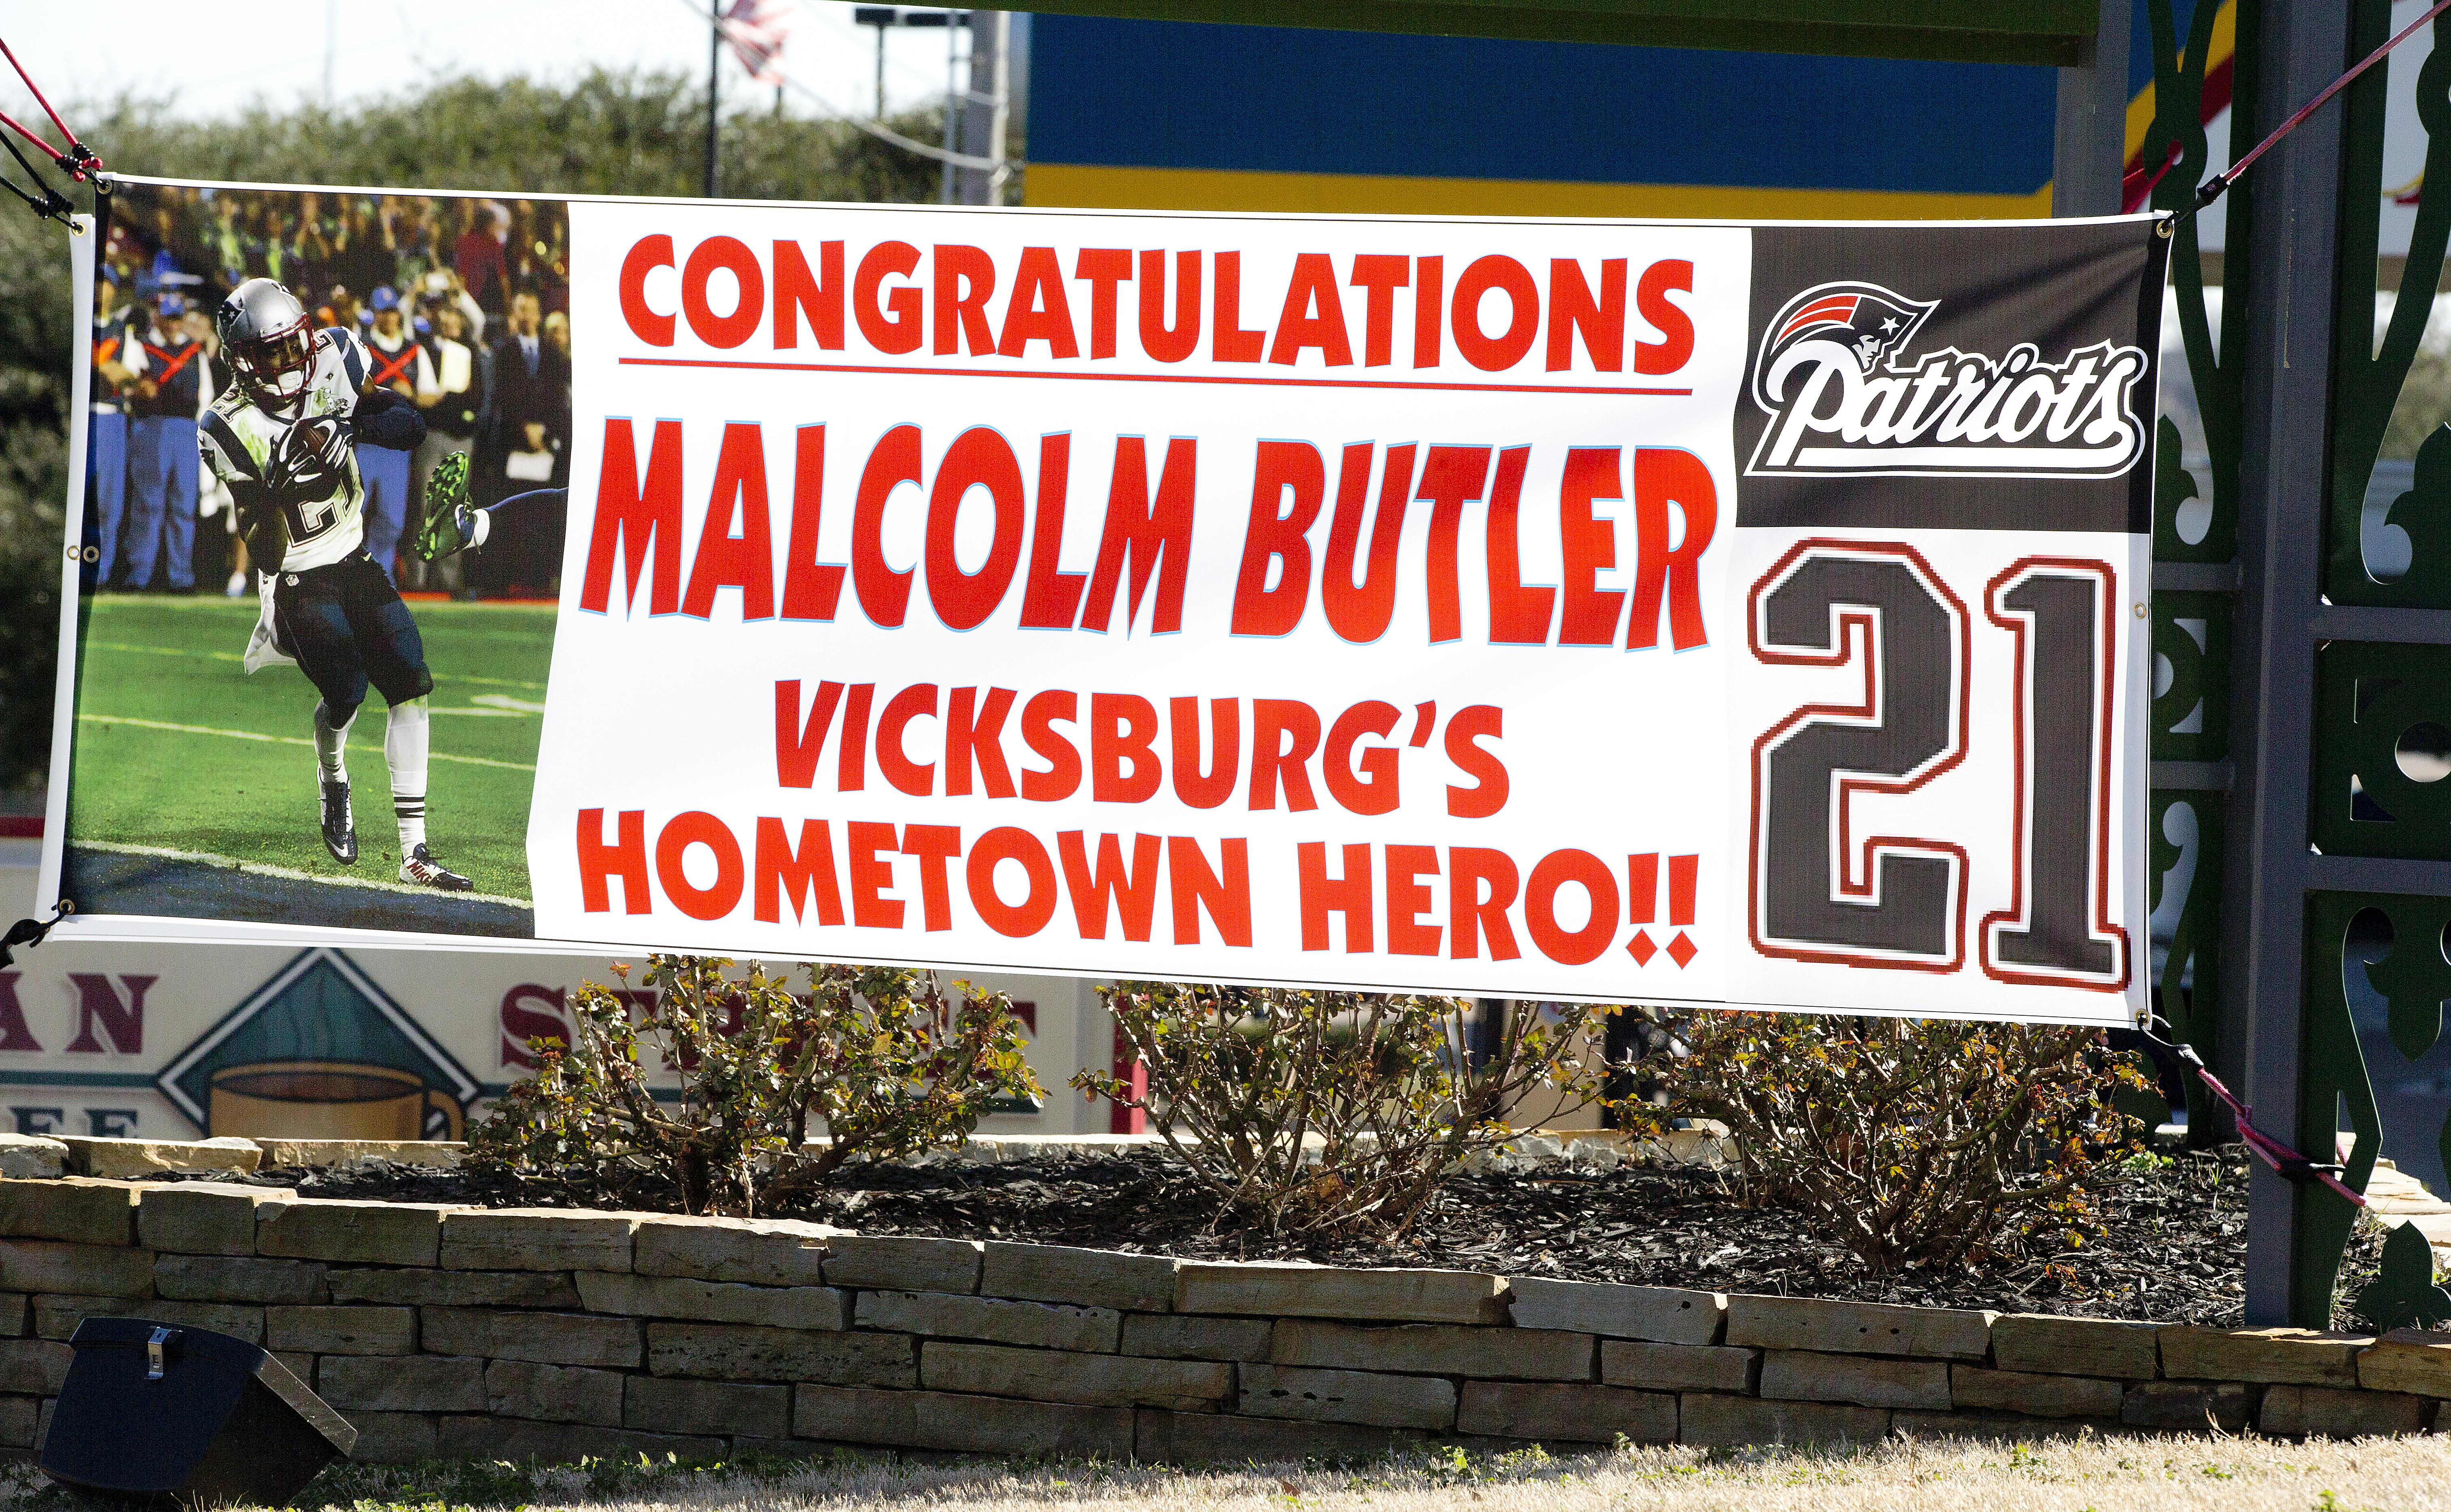 Butler was given a hero's reception when he returned to Vicksburg after his Super Bowl exploits